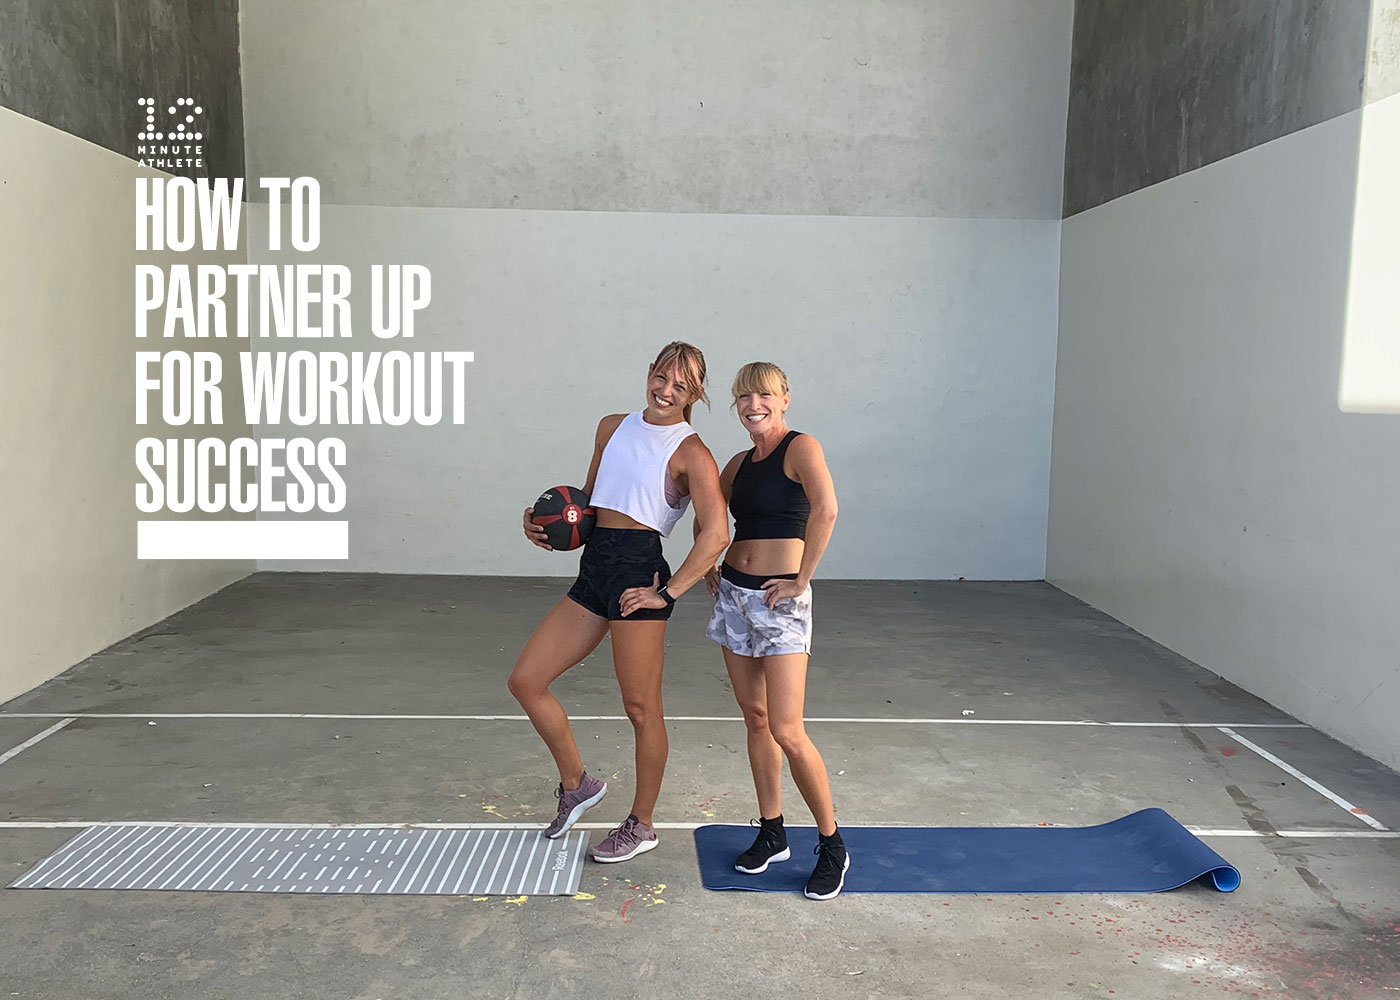 How to partner up for workout success